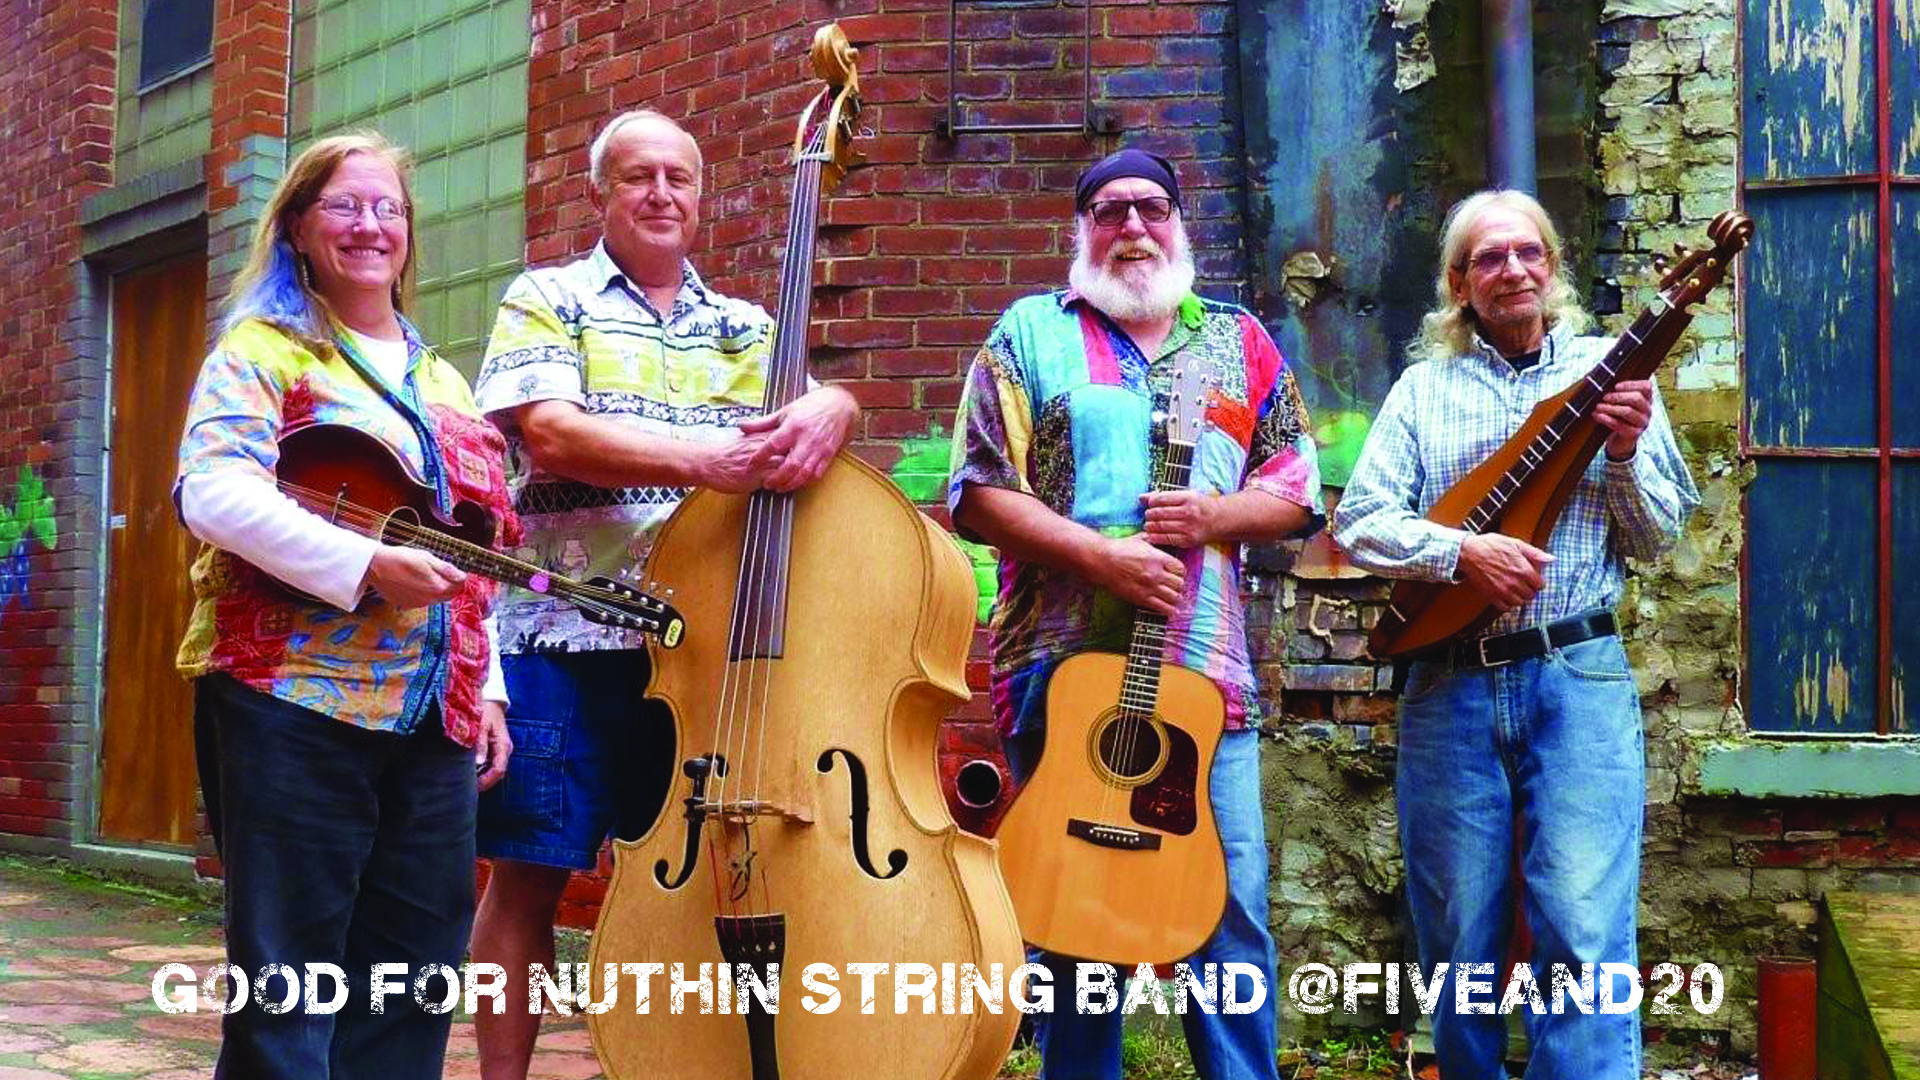 Sunday Sesh with Good for Nuthin String Band